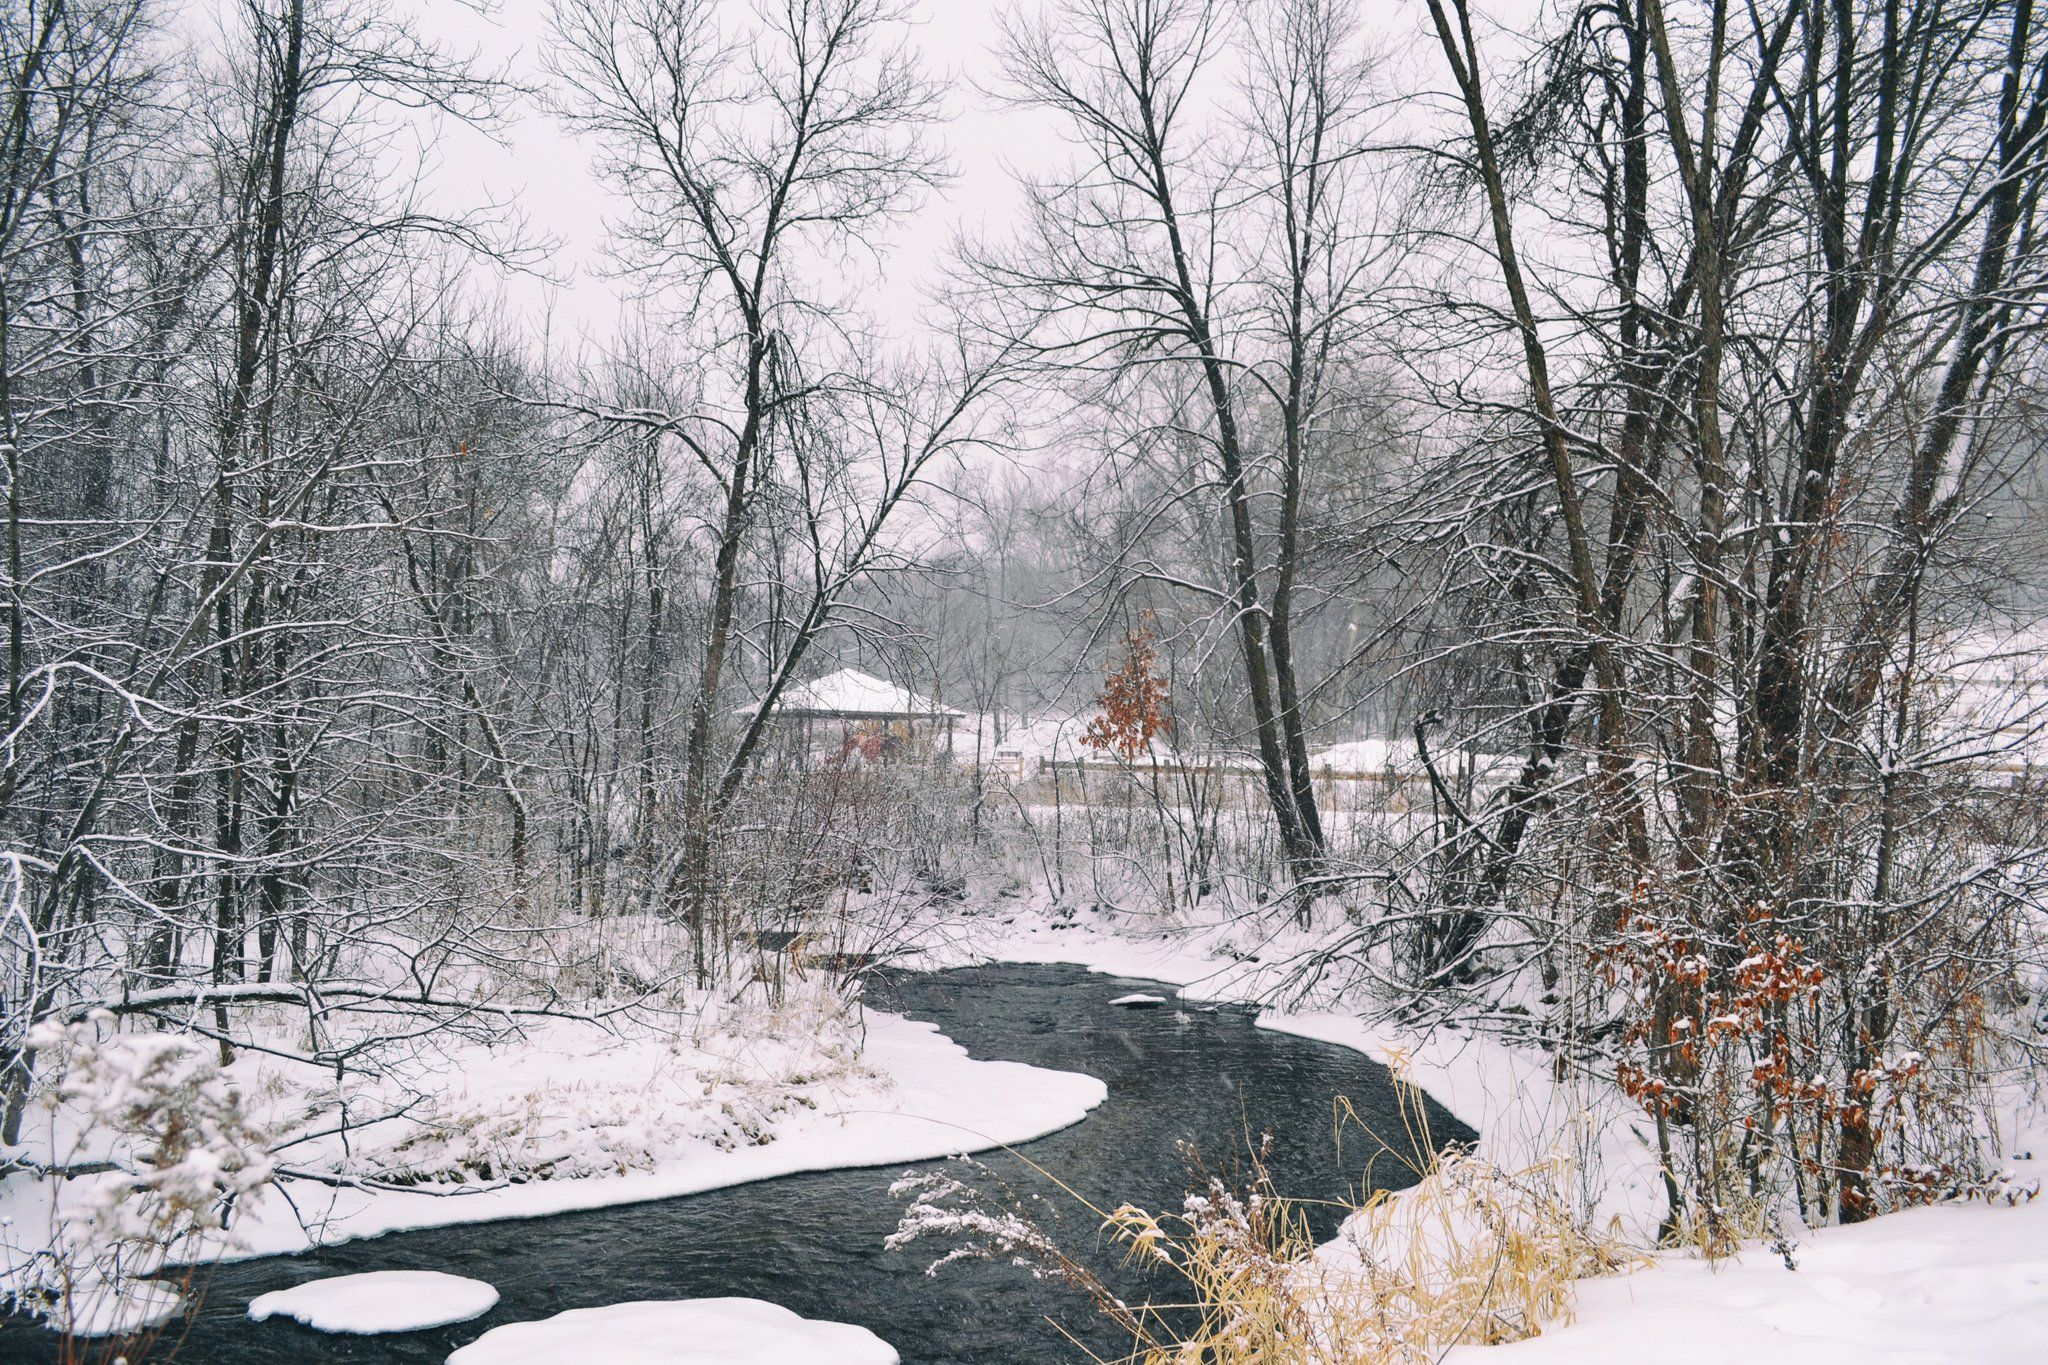 RT: Hidden Valley Park. Savage Minnesota. #Nature #Landscape #Minnesota #Winter #Photography https://t.co/xi9jWfgIqx via Liz_Nemmers #fol #photography